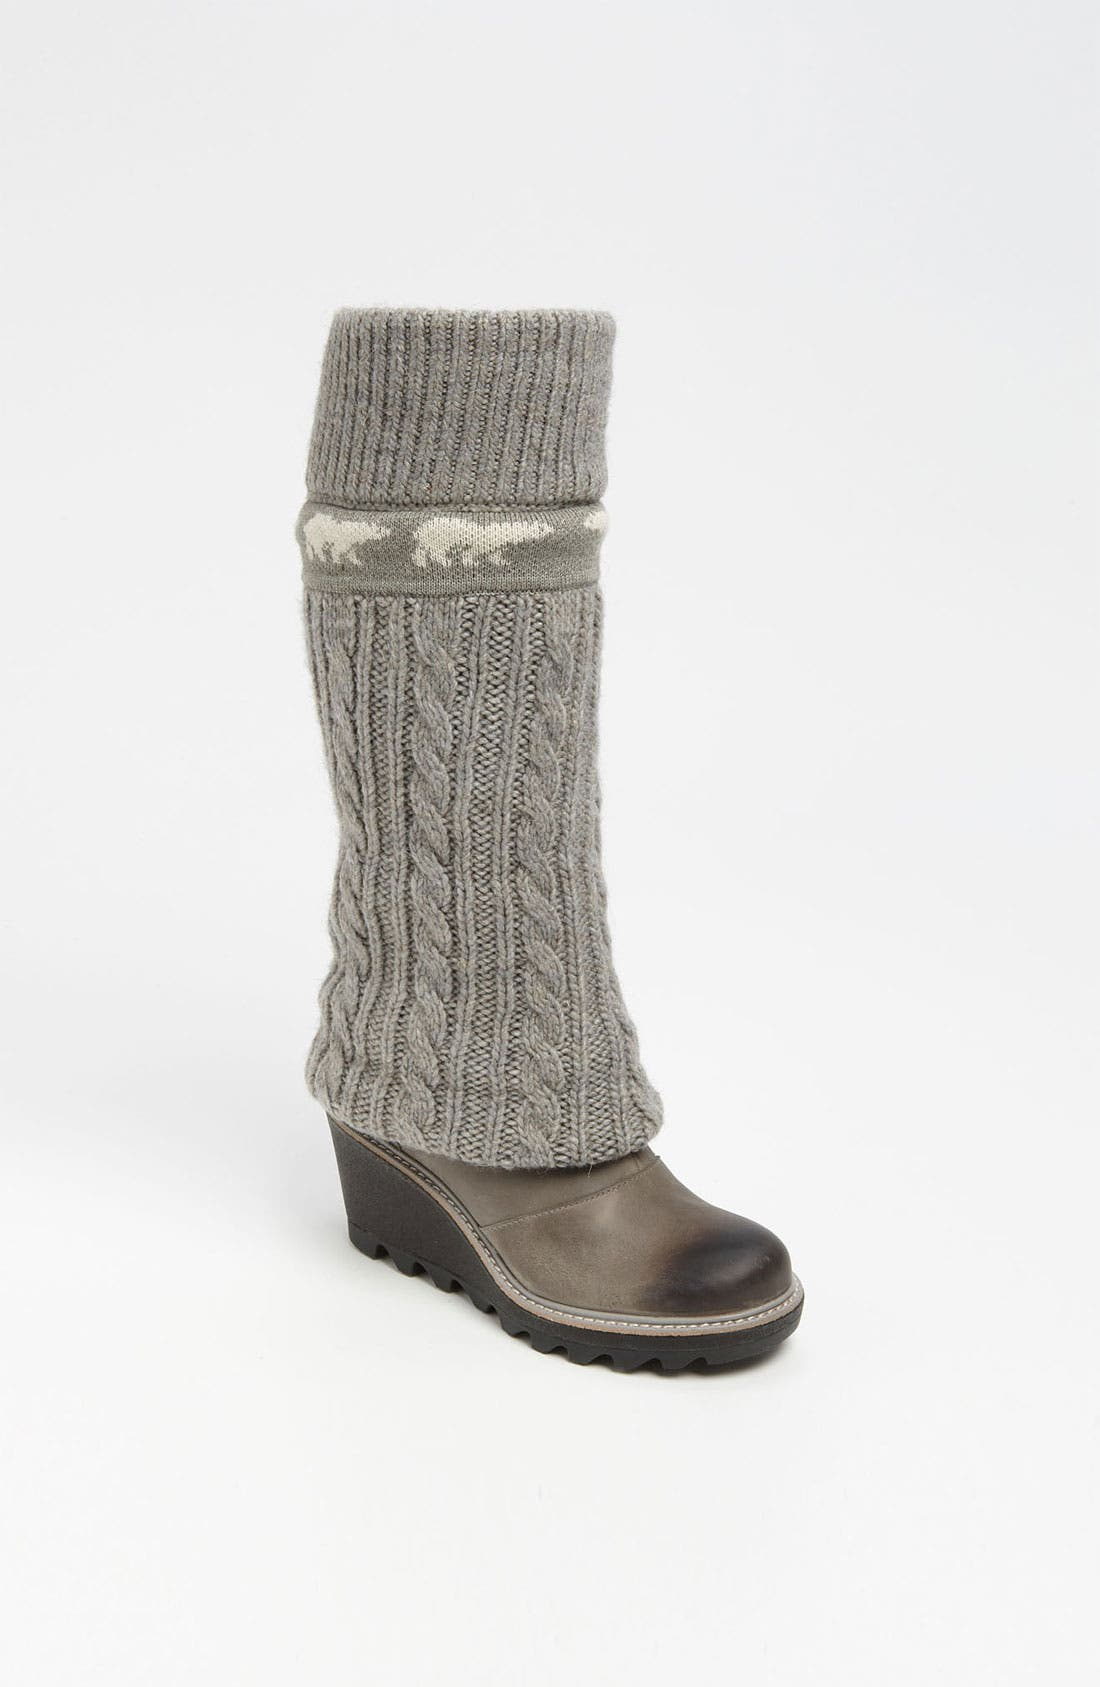 Alternate Image 1 Selected - Sorel 'Crazy Cable' Wedge Boot